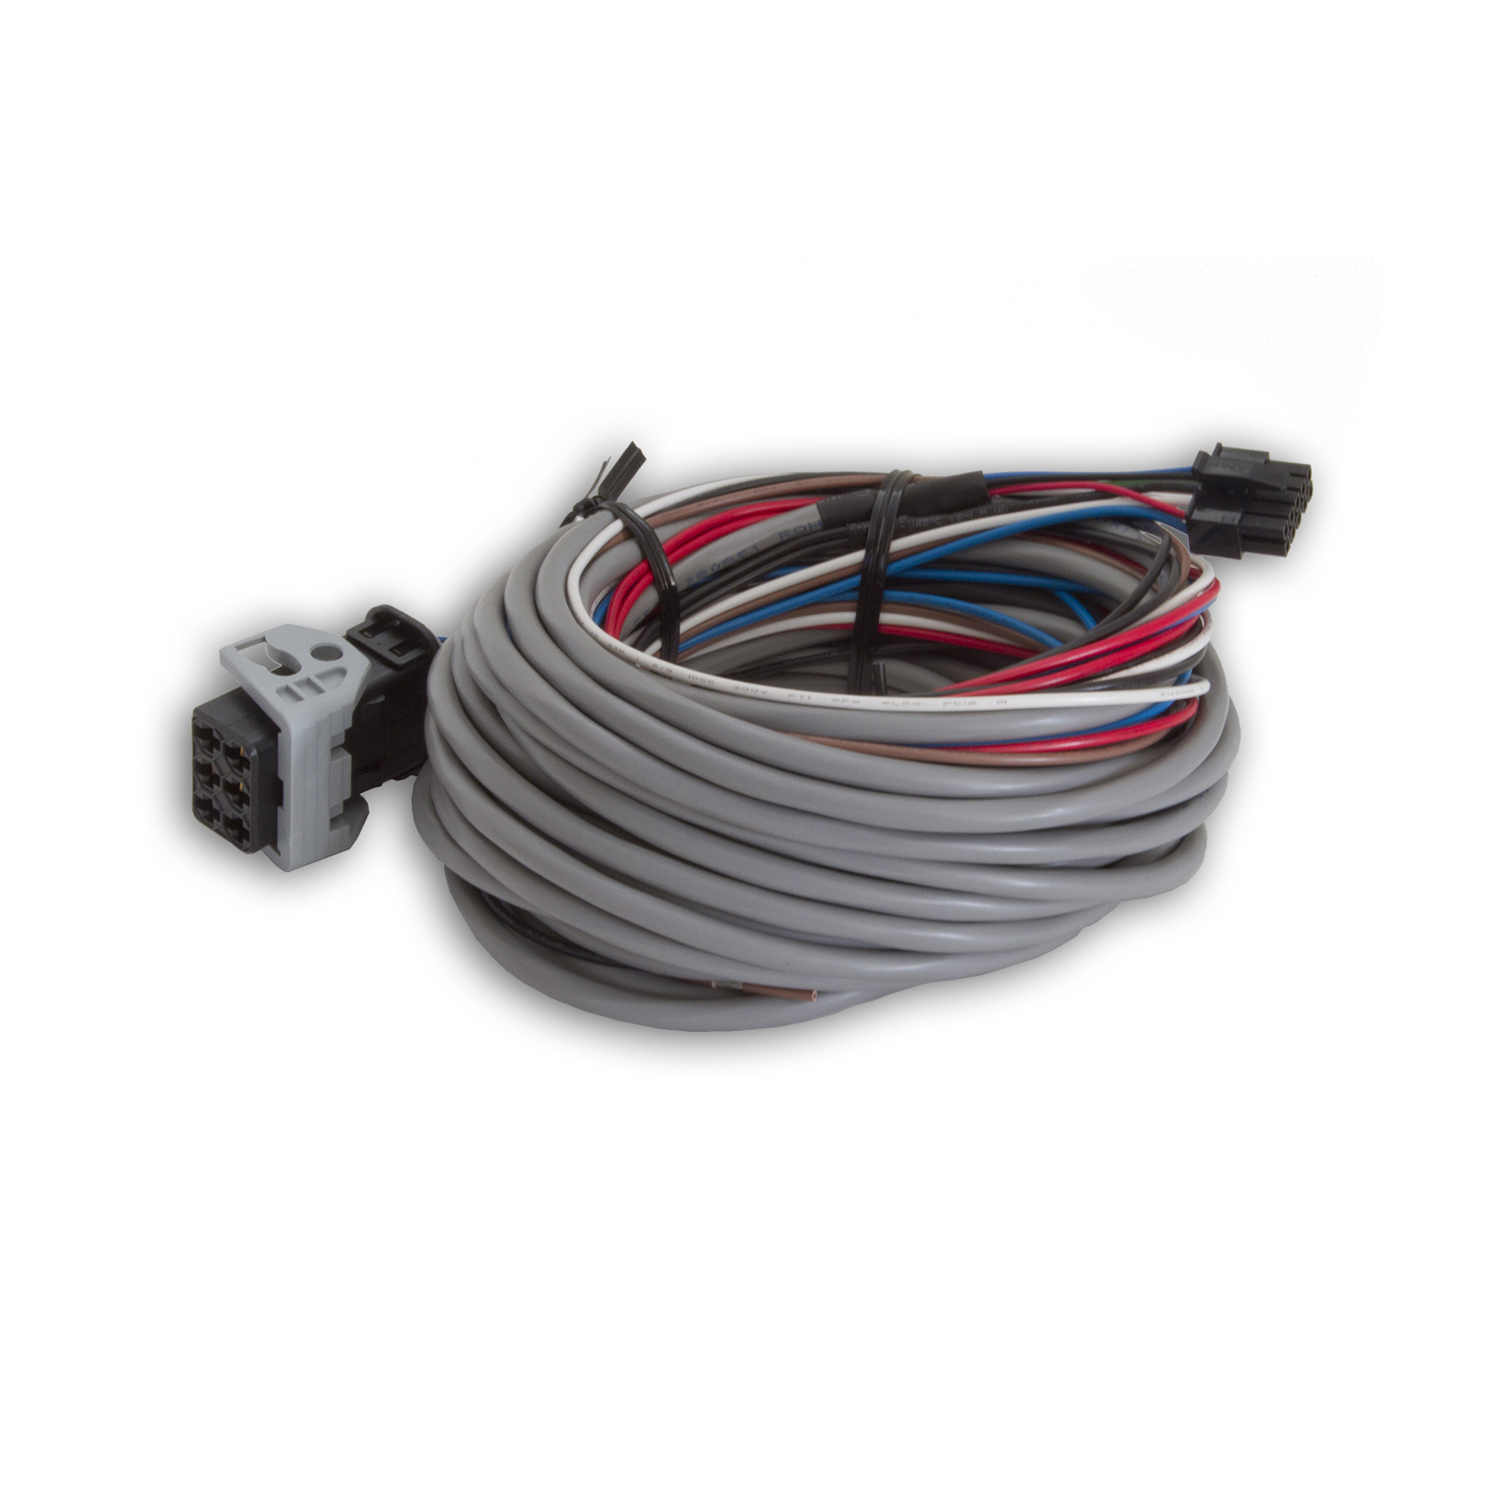 Pbz Shop Autometer Wire Harness Extension 25ft Wideband Air Wiring Fuel Ratio Street Analog 5252